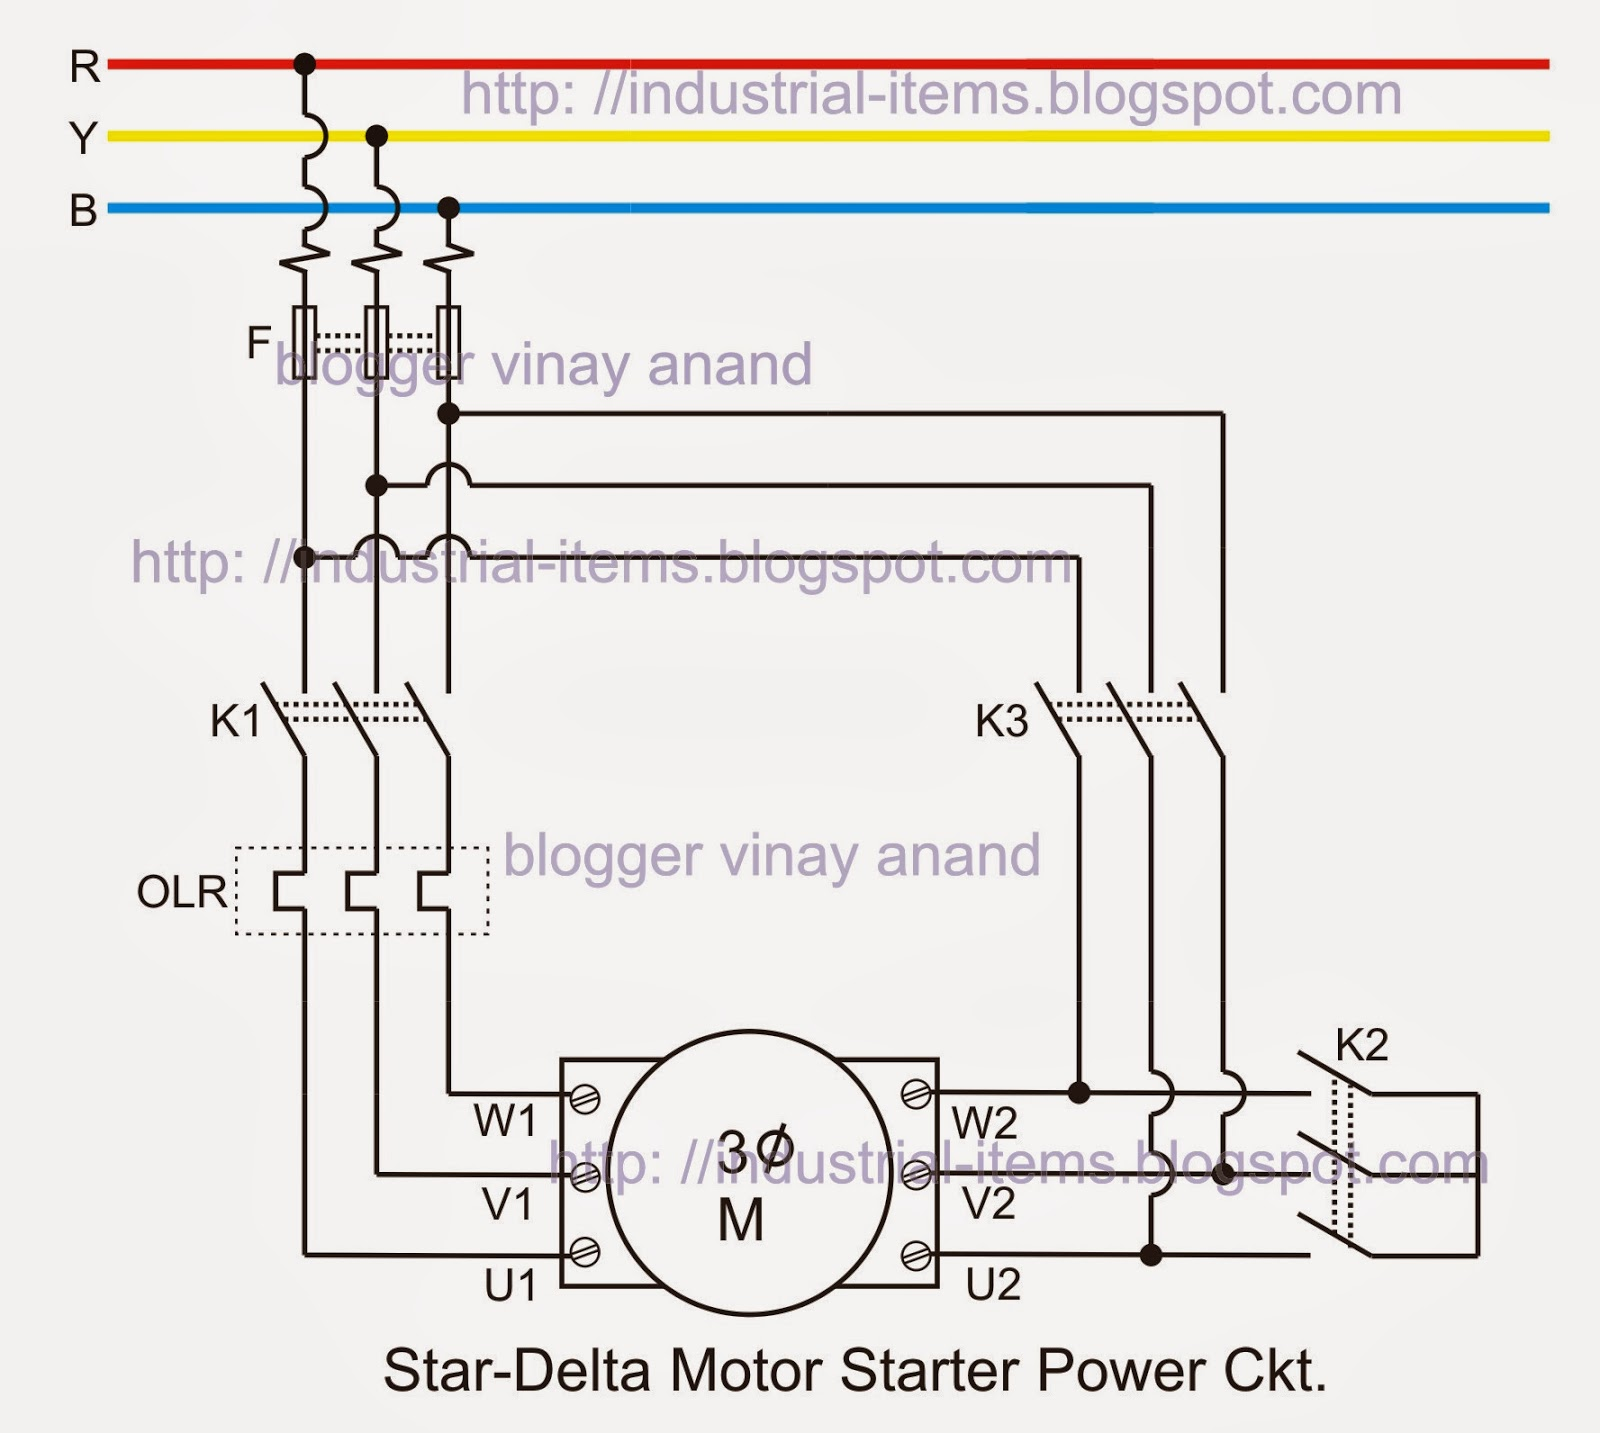 Synchronous Motor Wiring Diagram | www.topsimages.com on quad outlet wiring diagram, stator diagram, three-phase generator diagram,